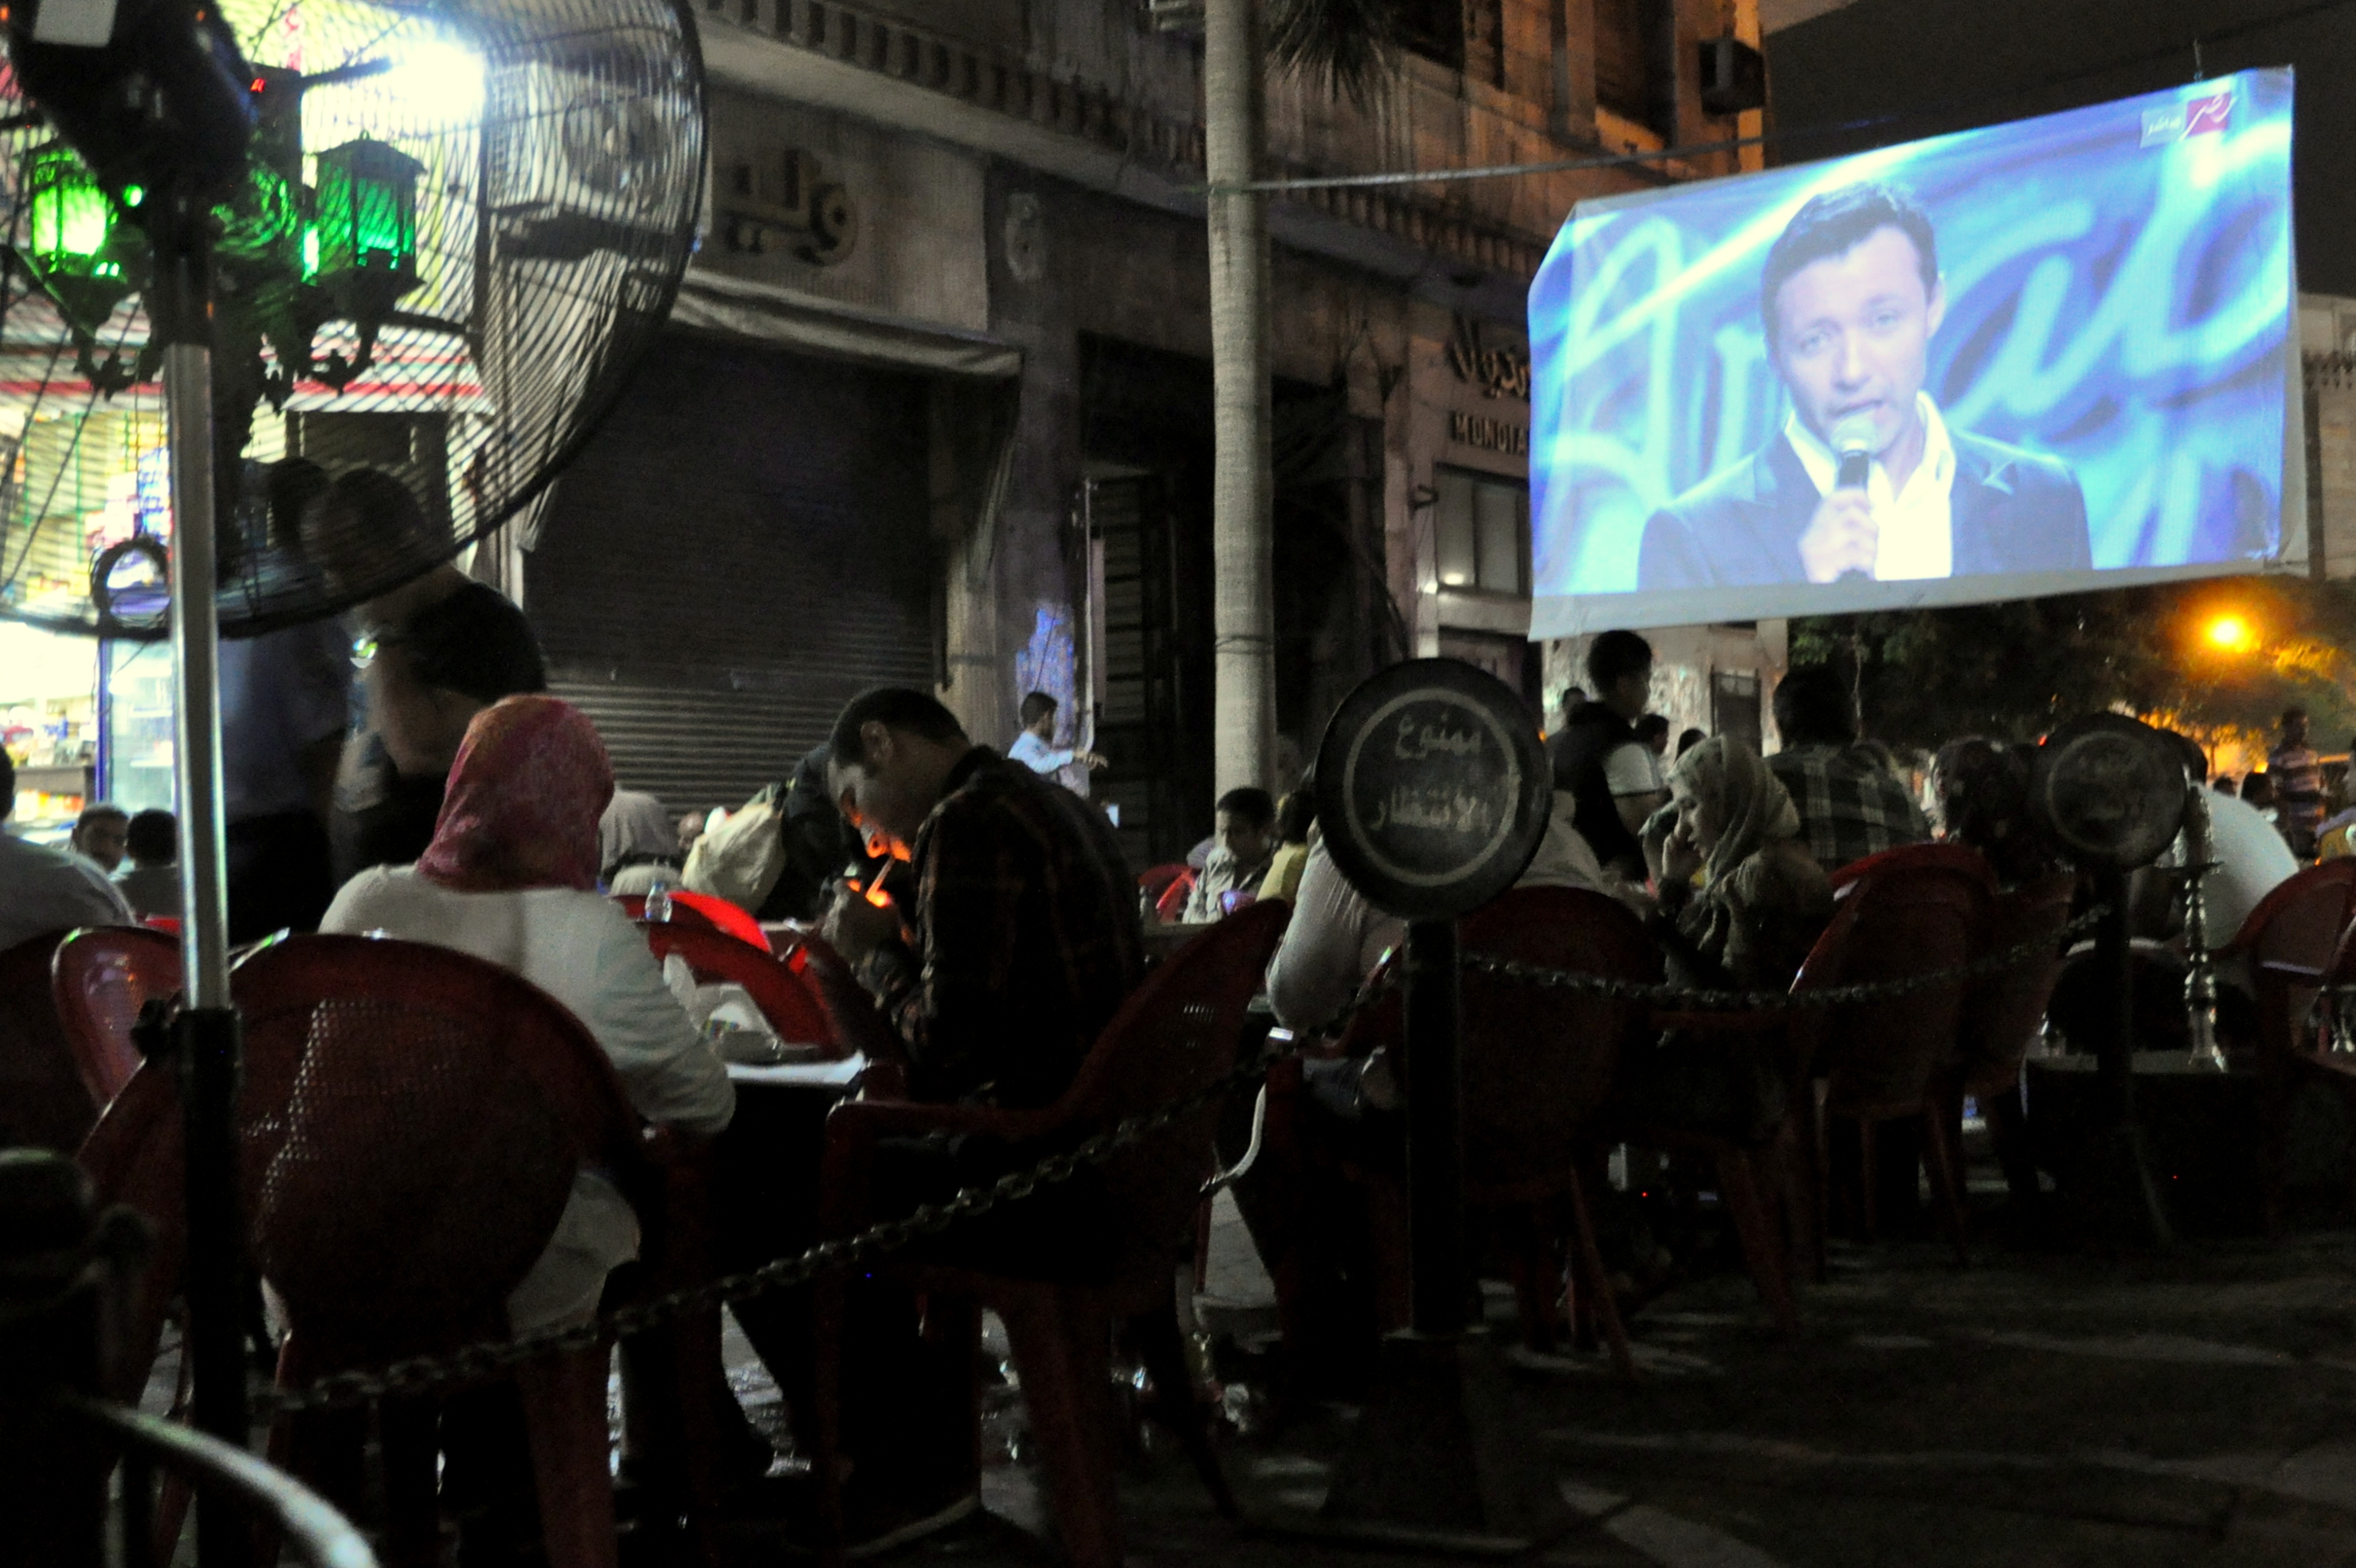 Cafe patrons watch Arab Idol at an outdoor cafe in El Borsa, Downtown, Cairo (Photo By Aaron T Rose)